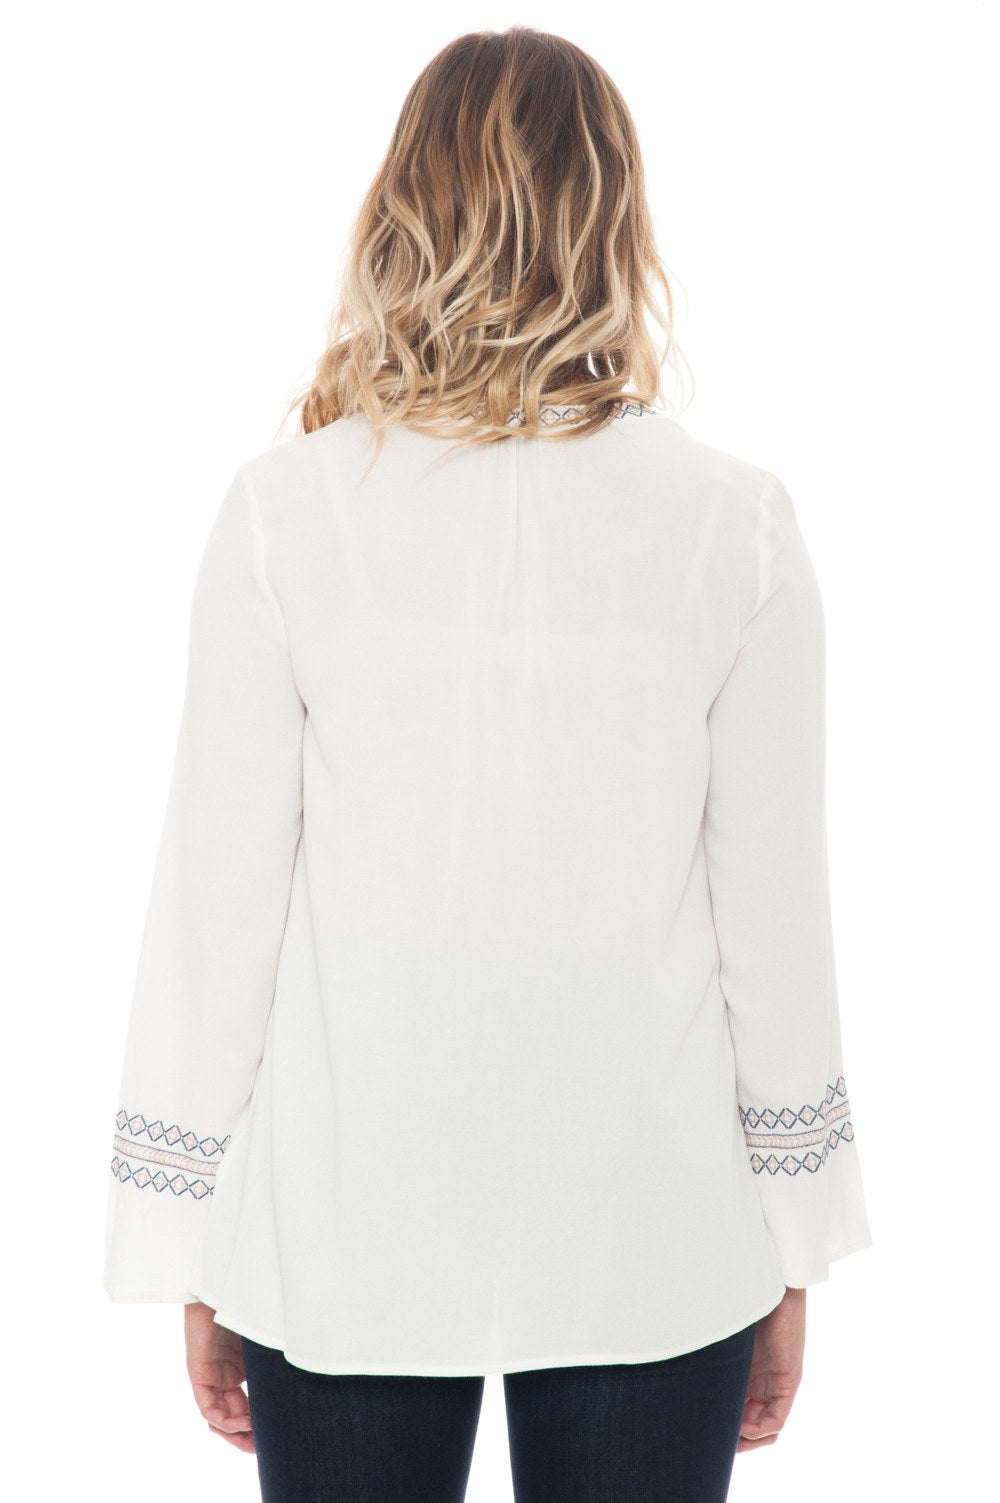 Blouse - Lace Up with Sleeve Detail - 4